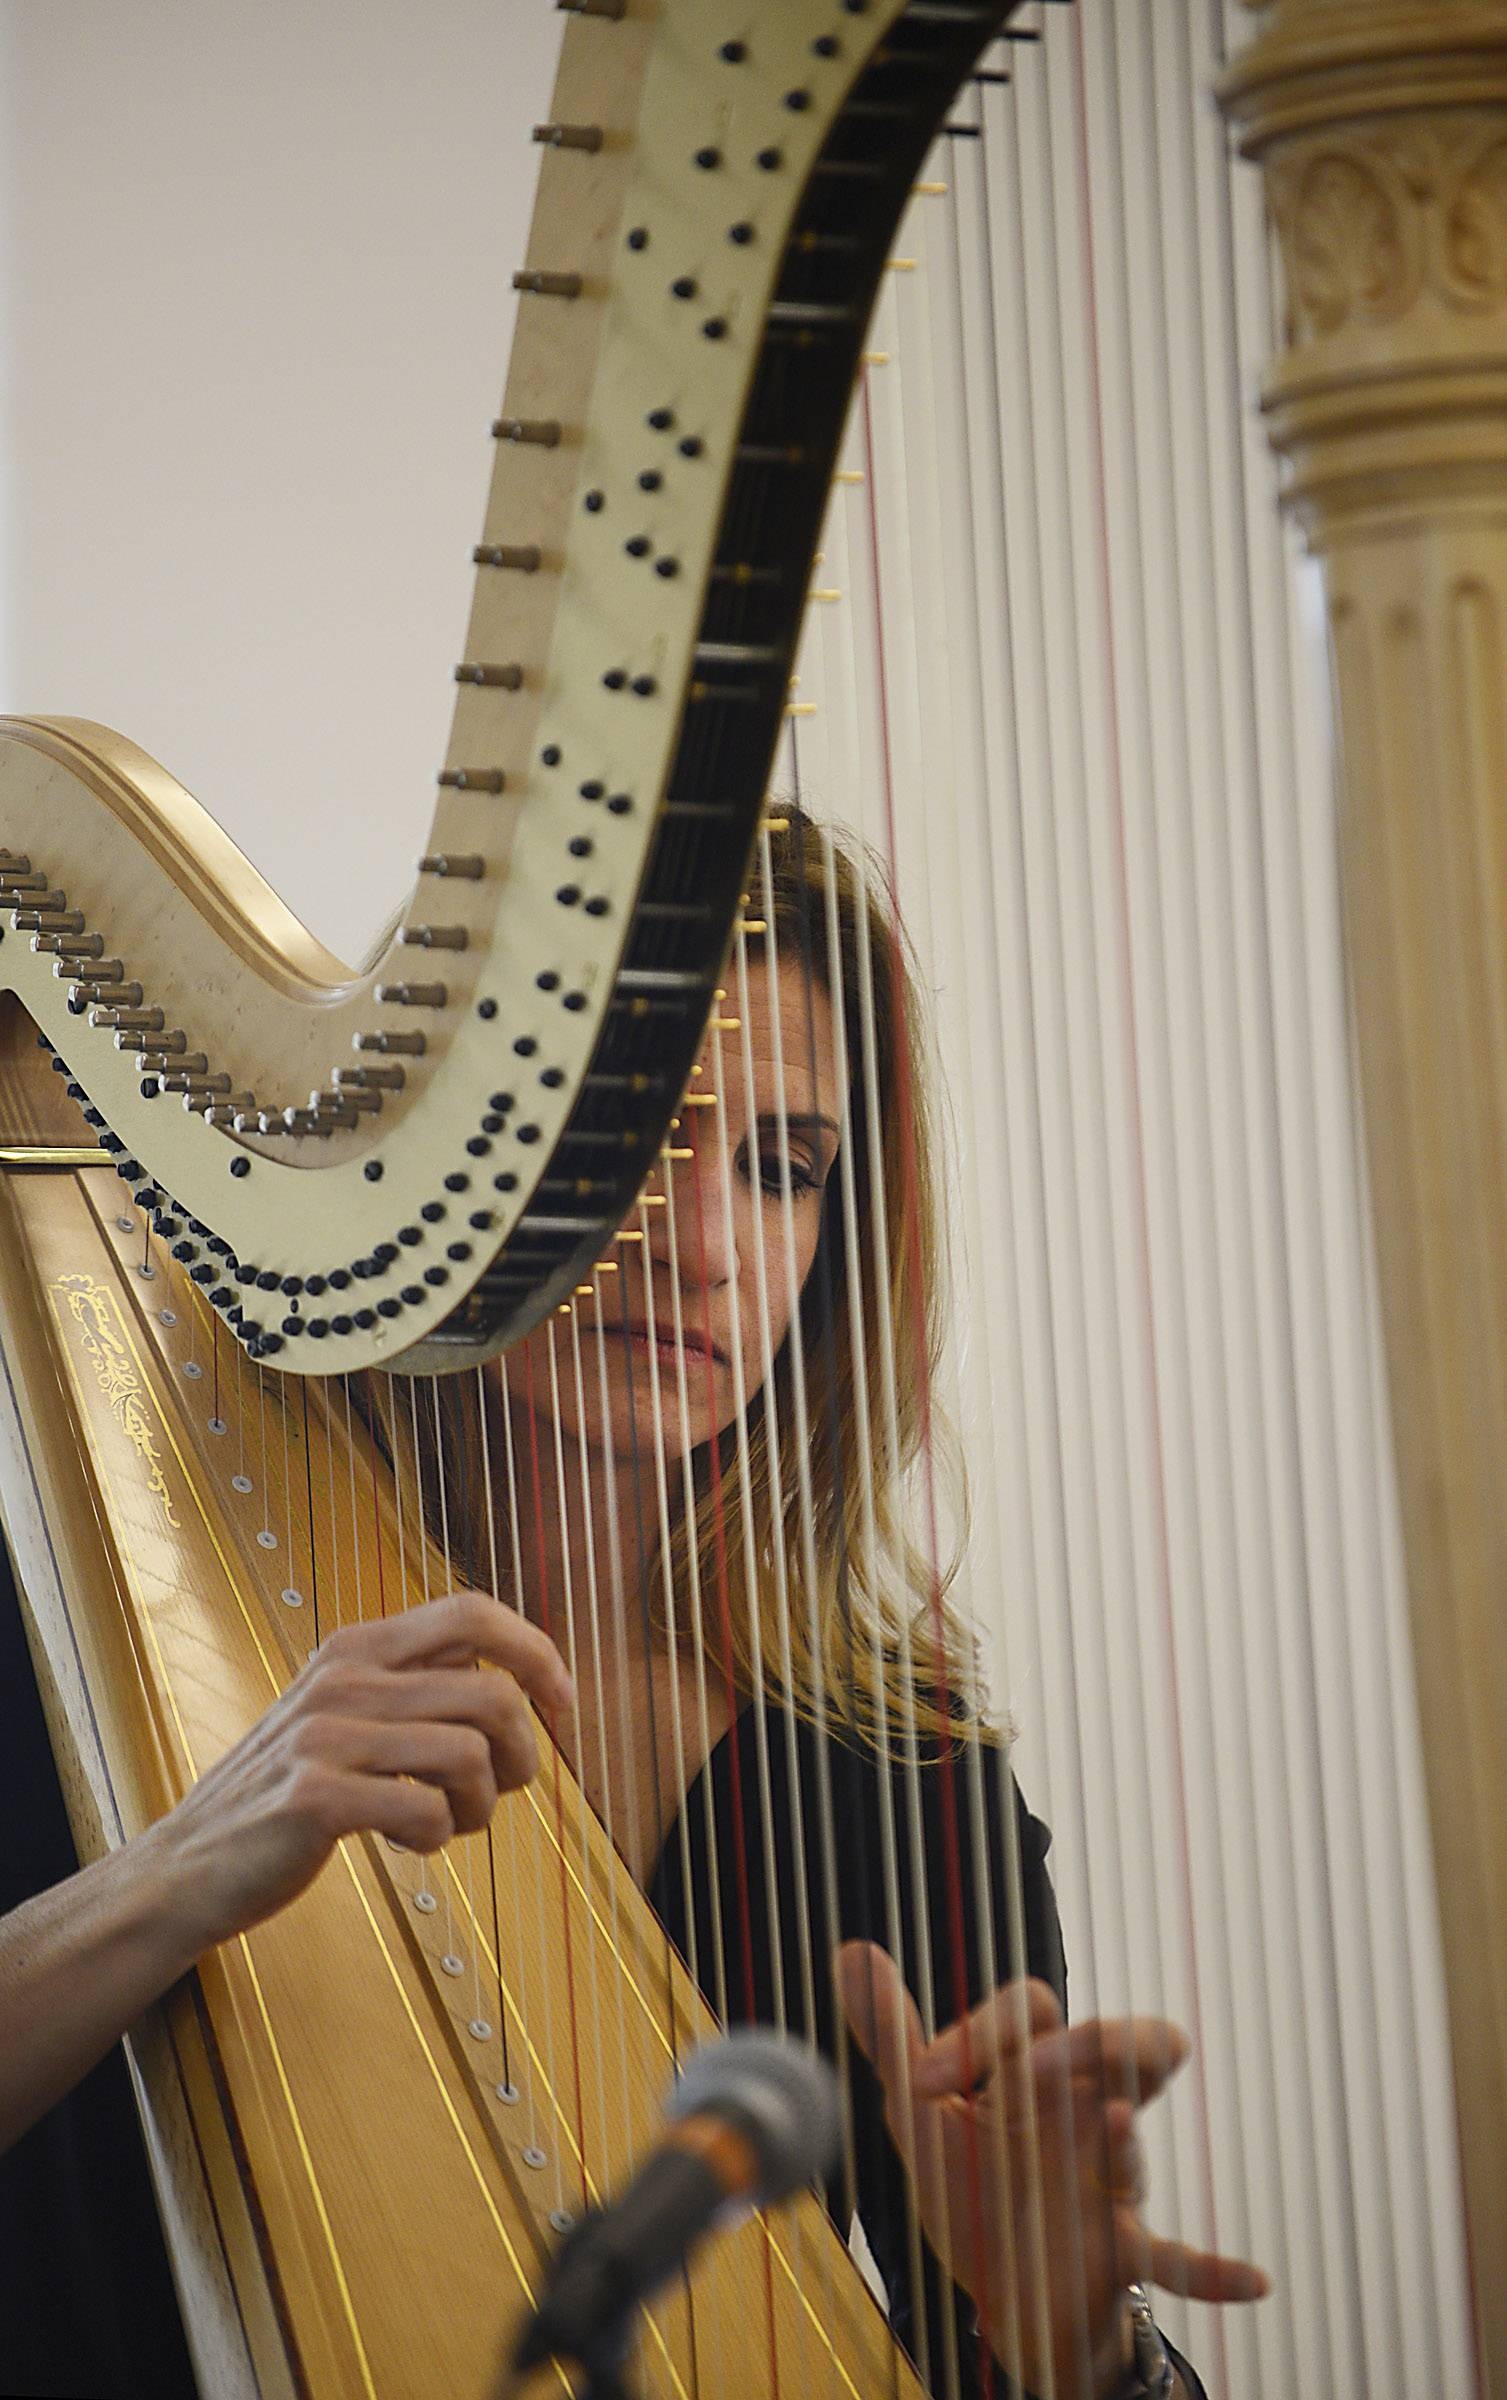 Laura Fako Utley plays the harp Sunday at the 16th annual Kaneland Community Fine Arts Festival at Kaneland High School in Maple Park. The Elmhurst native regularly performs at Edward Hospital in Naperville as part the its Healing Arts program.